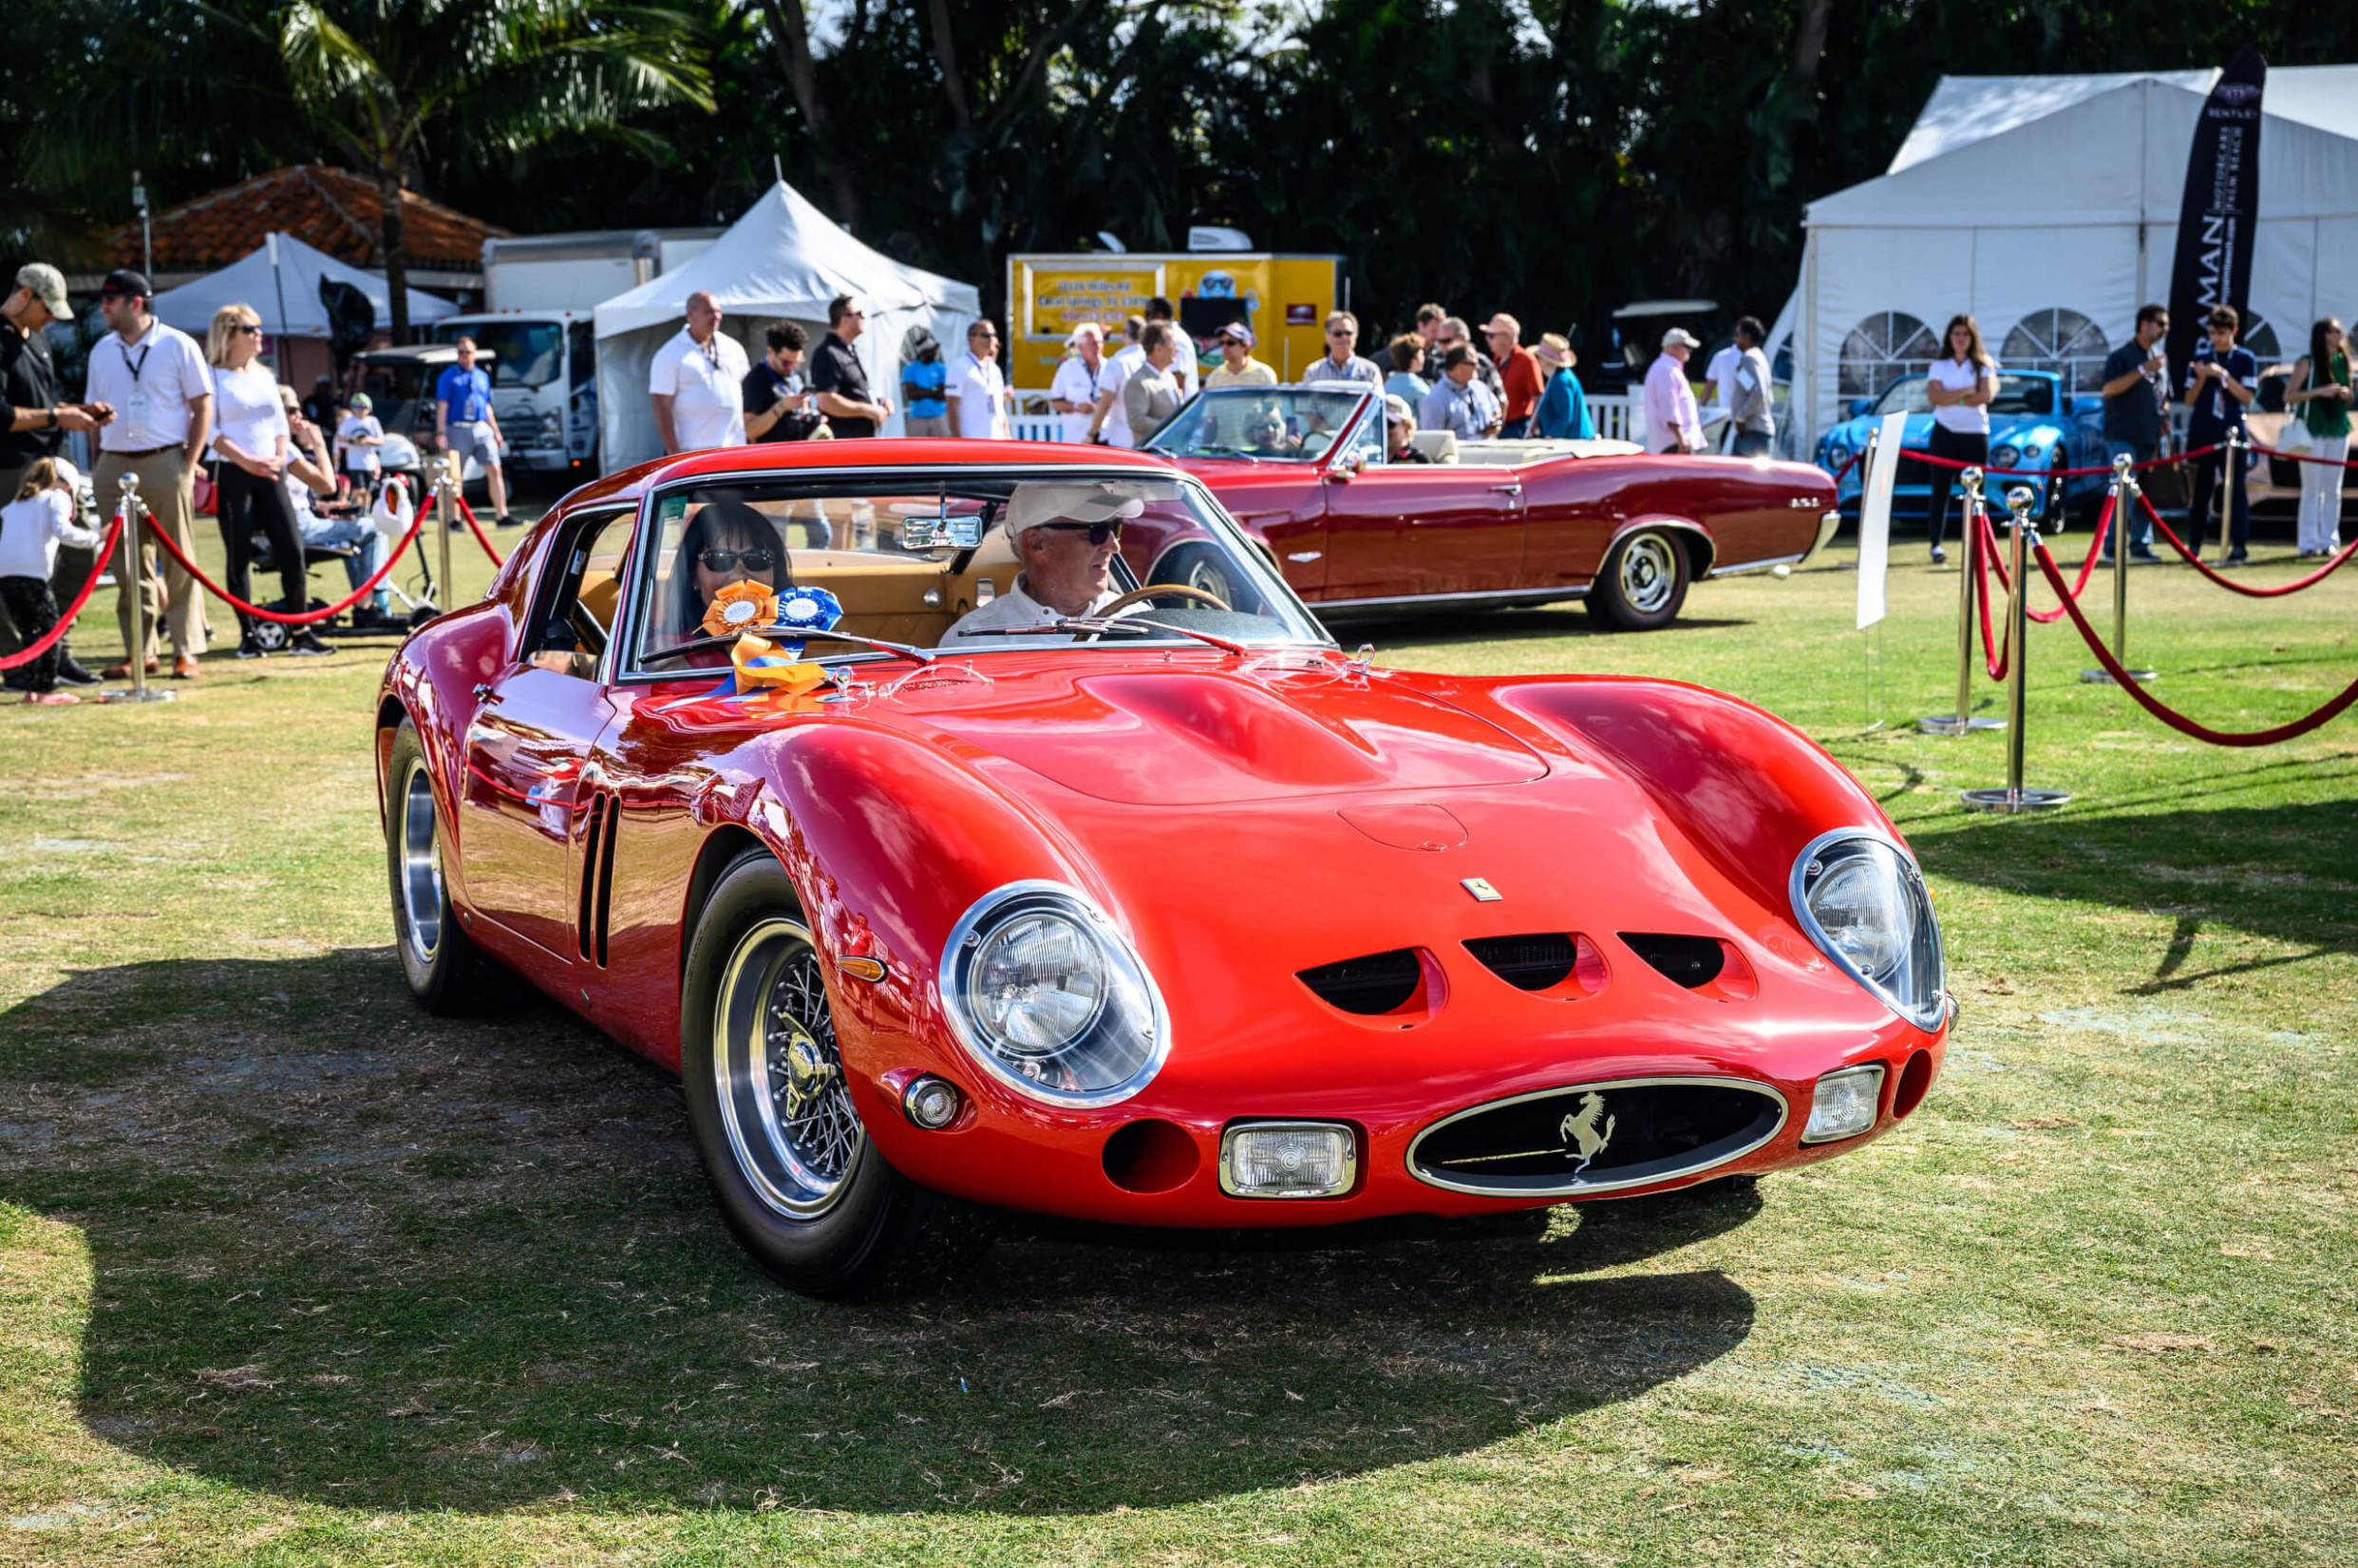 Winning Big in Boca: Ferrari 7 GTO Awarded 'Best of Show' at ...